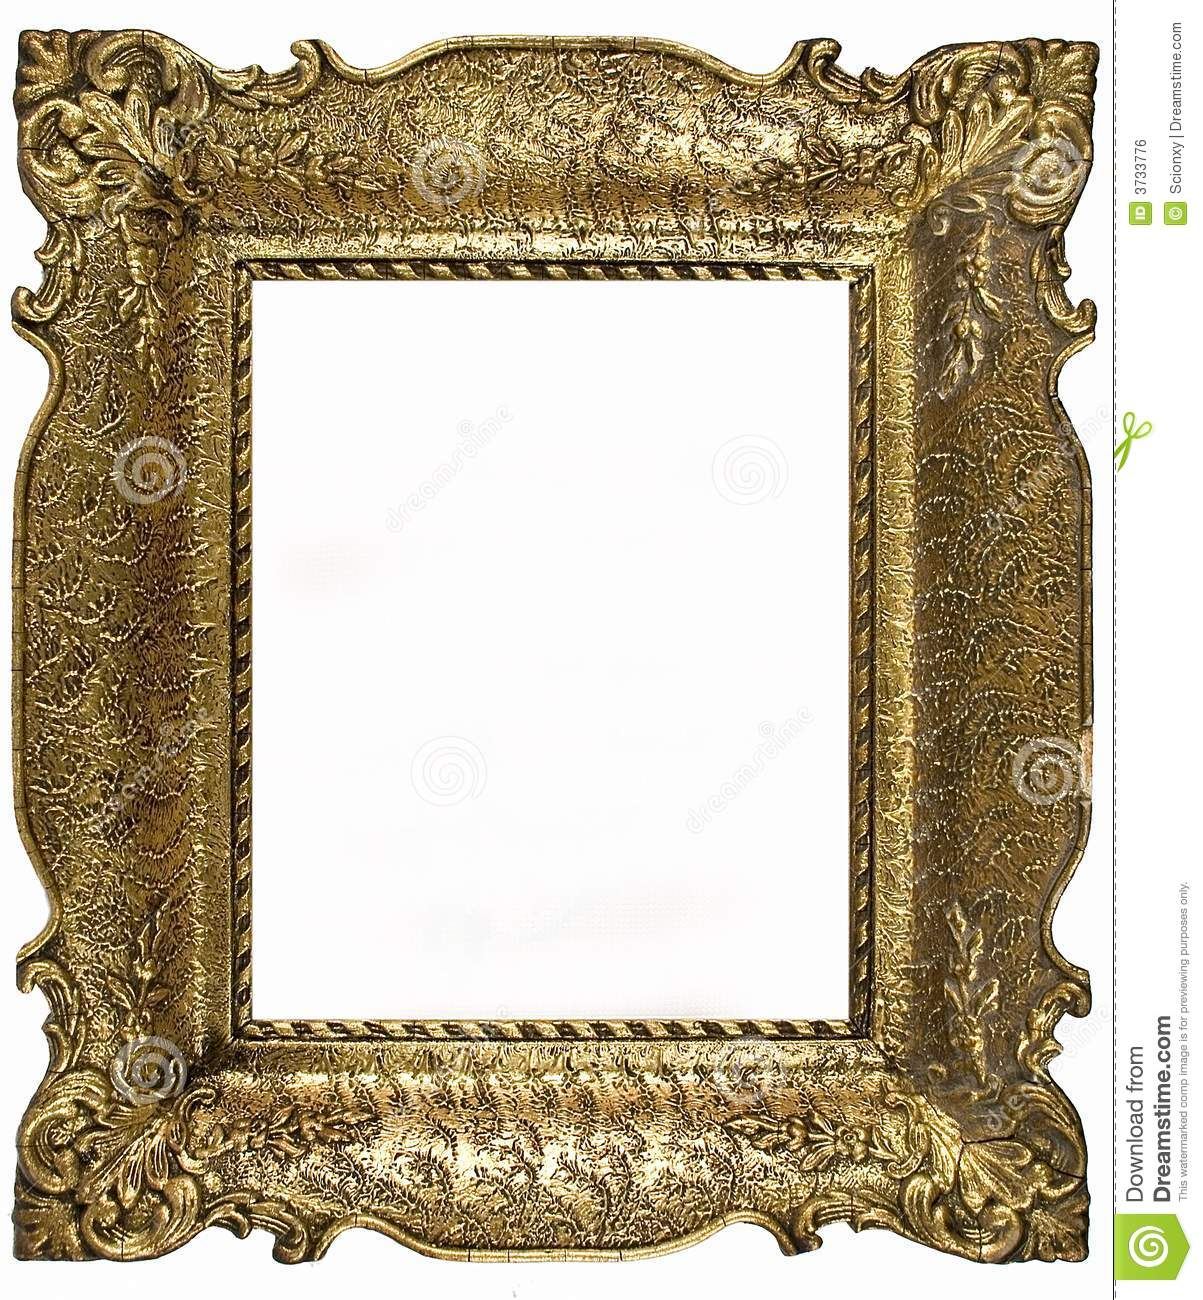 Old Portrait Frame Royalty Free Stock Image  Image: 3733776